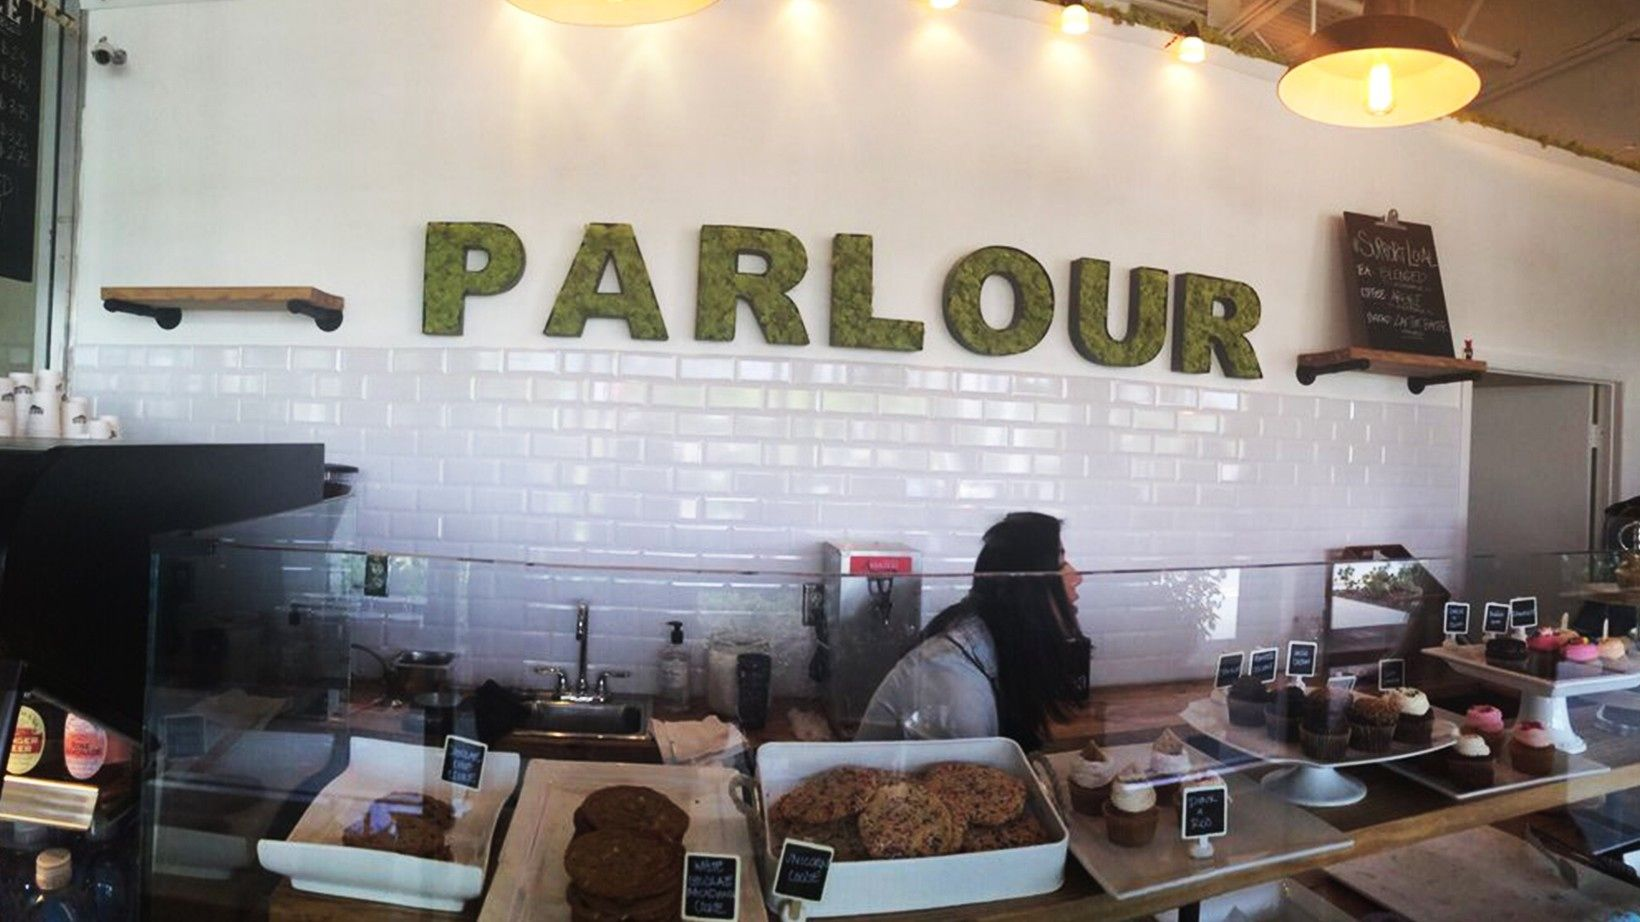 The new Parlour Bakery has managed to bridge the cultural